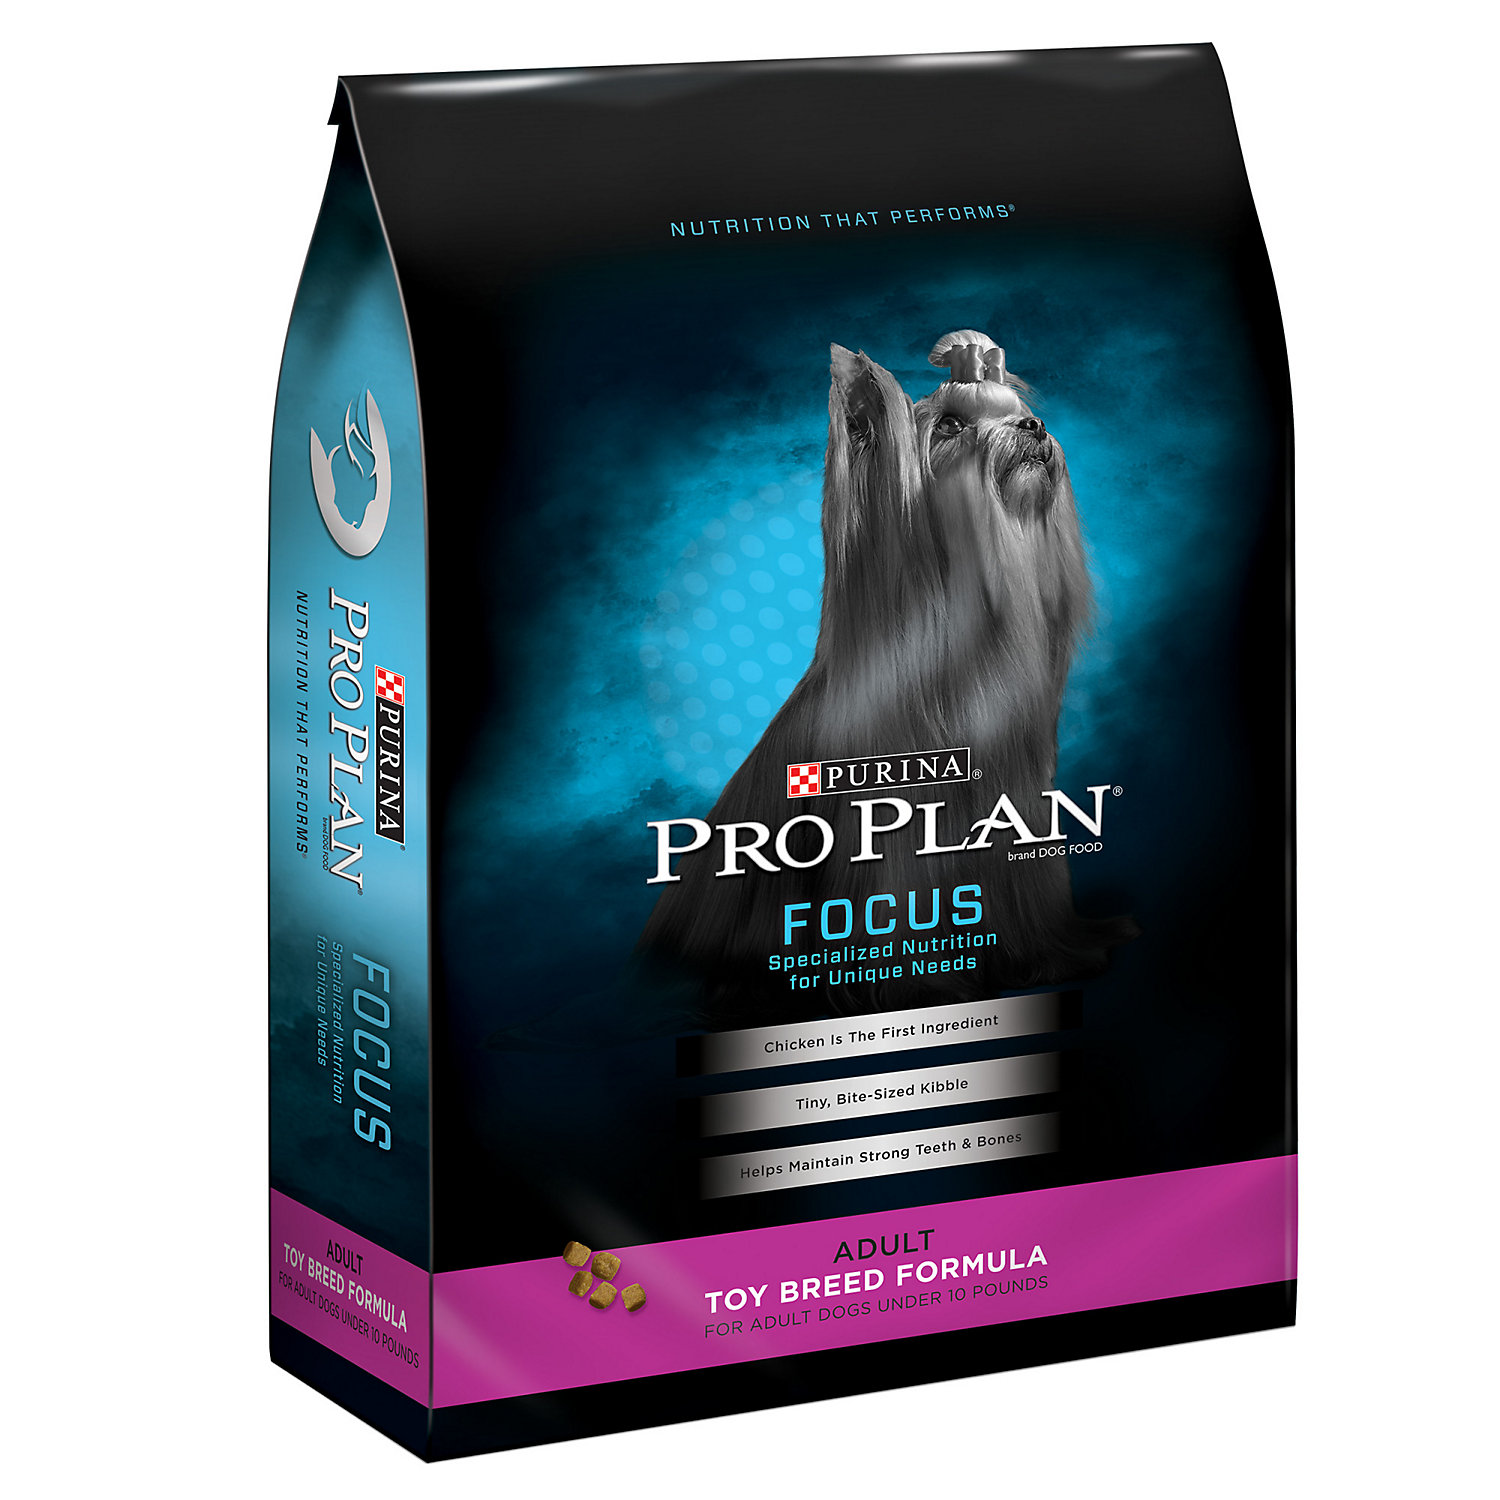 Purina Pro Plan Focus High Protein Toy Breed Formula Dry Dog Food